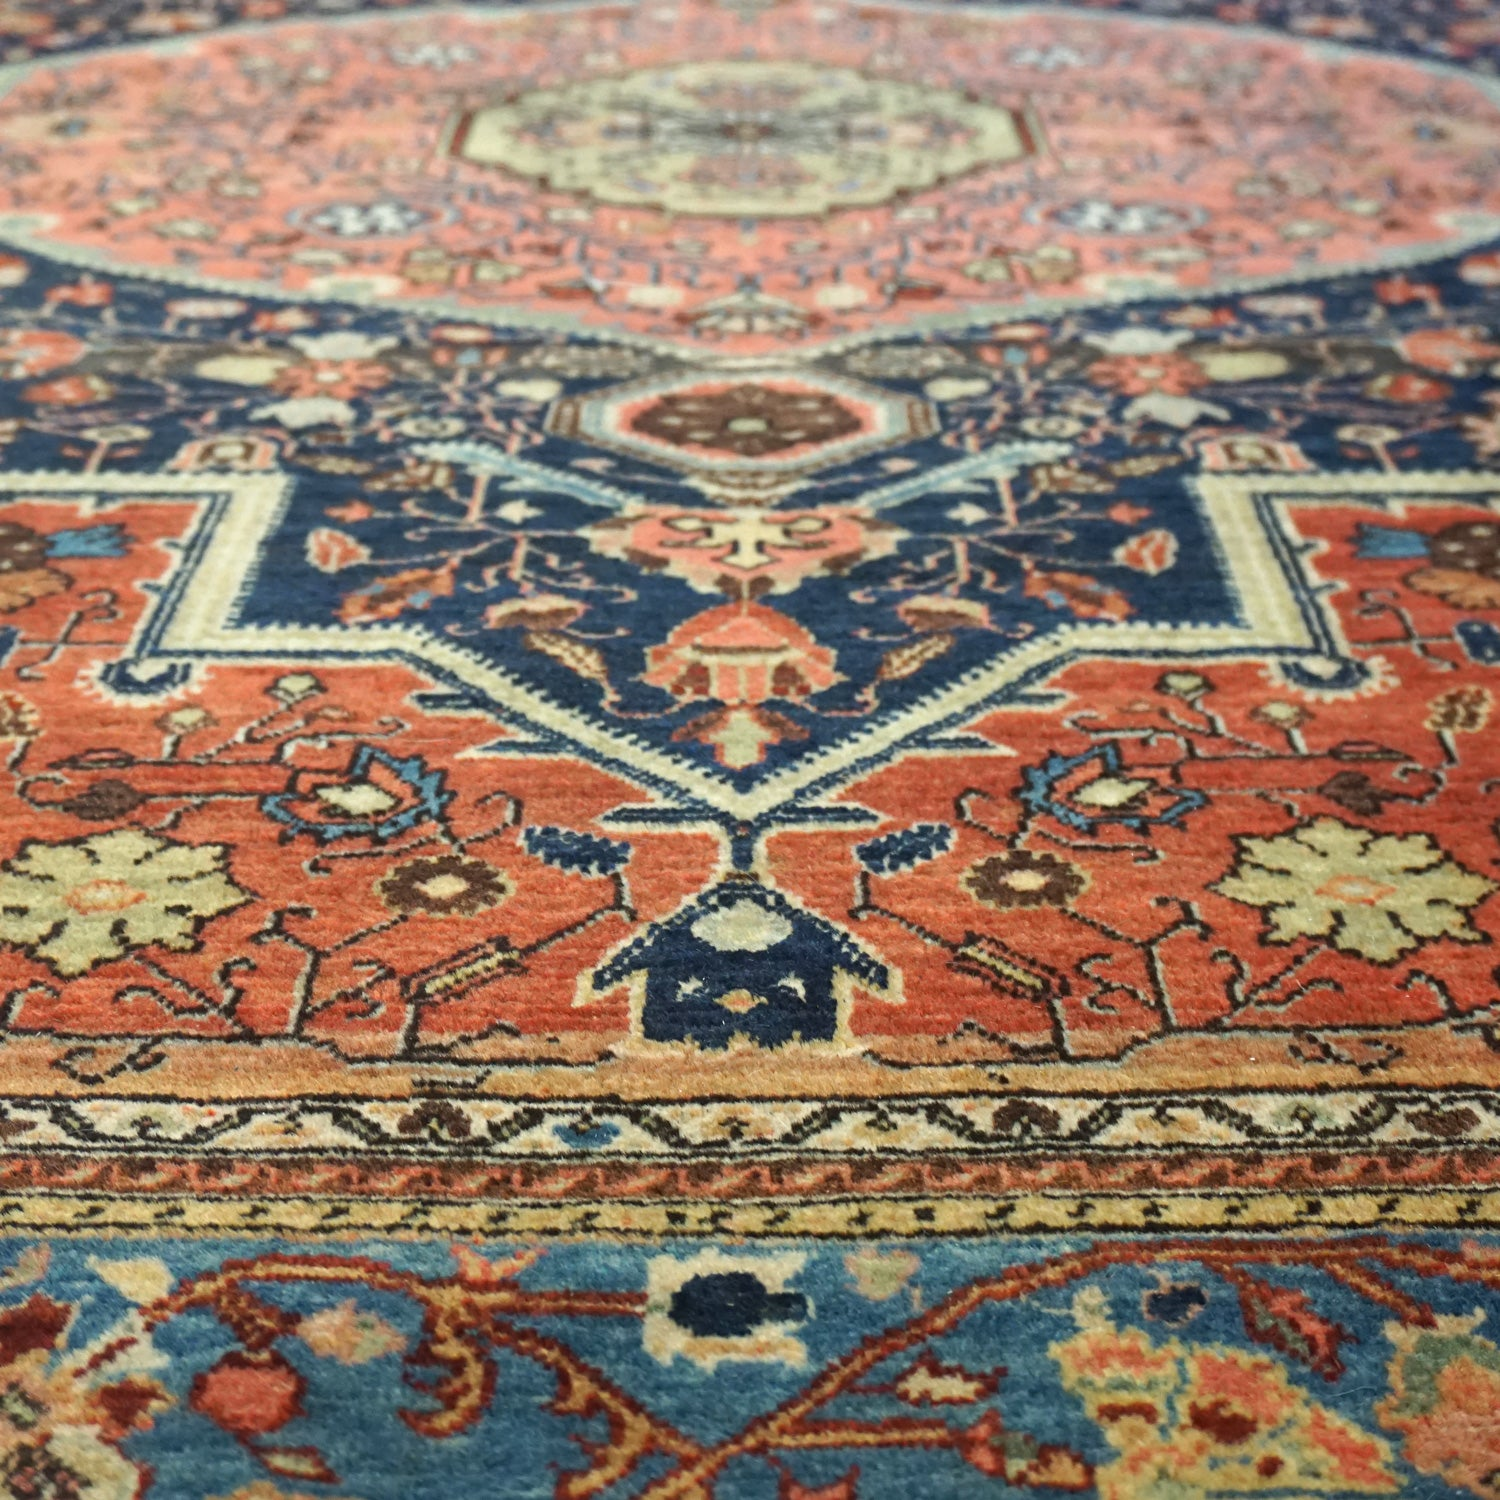 Antique Jozan Handwoven Traditional Rug